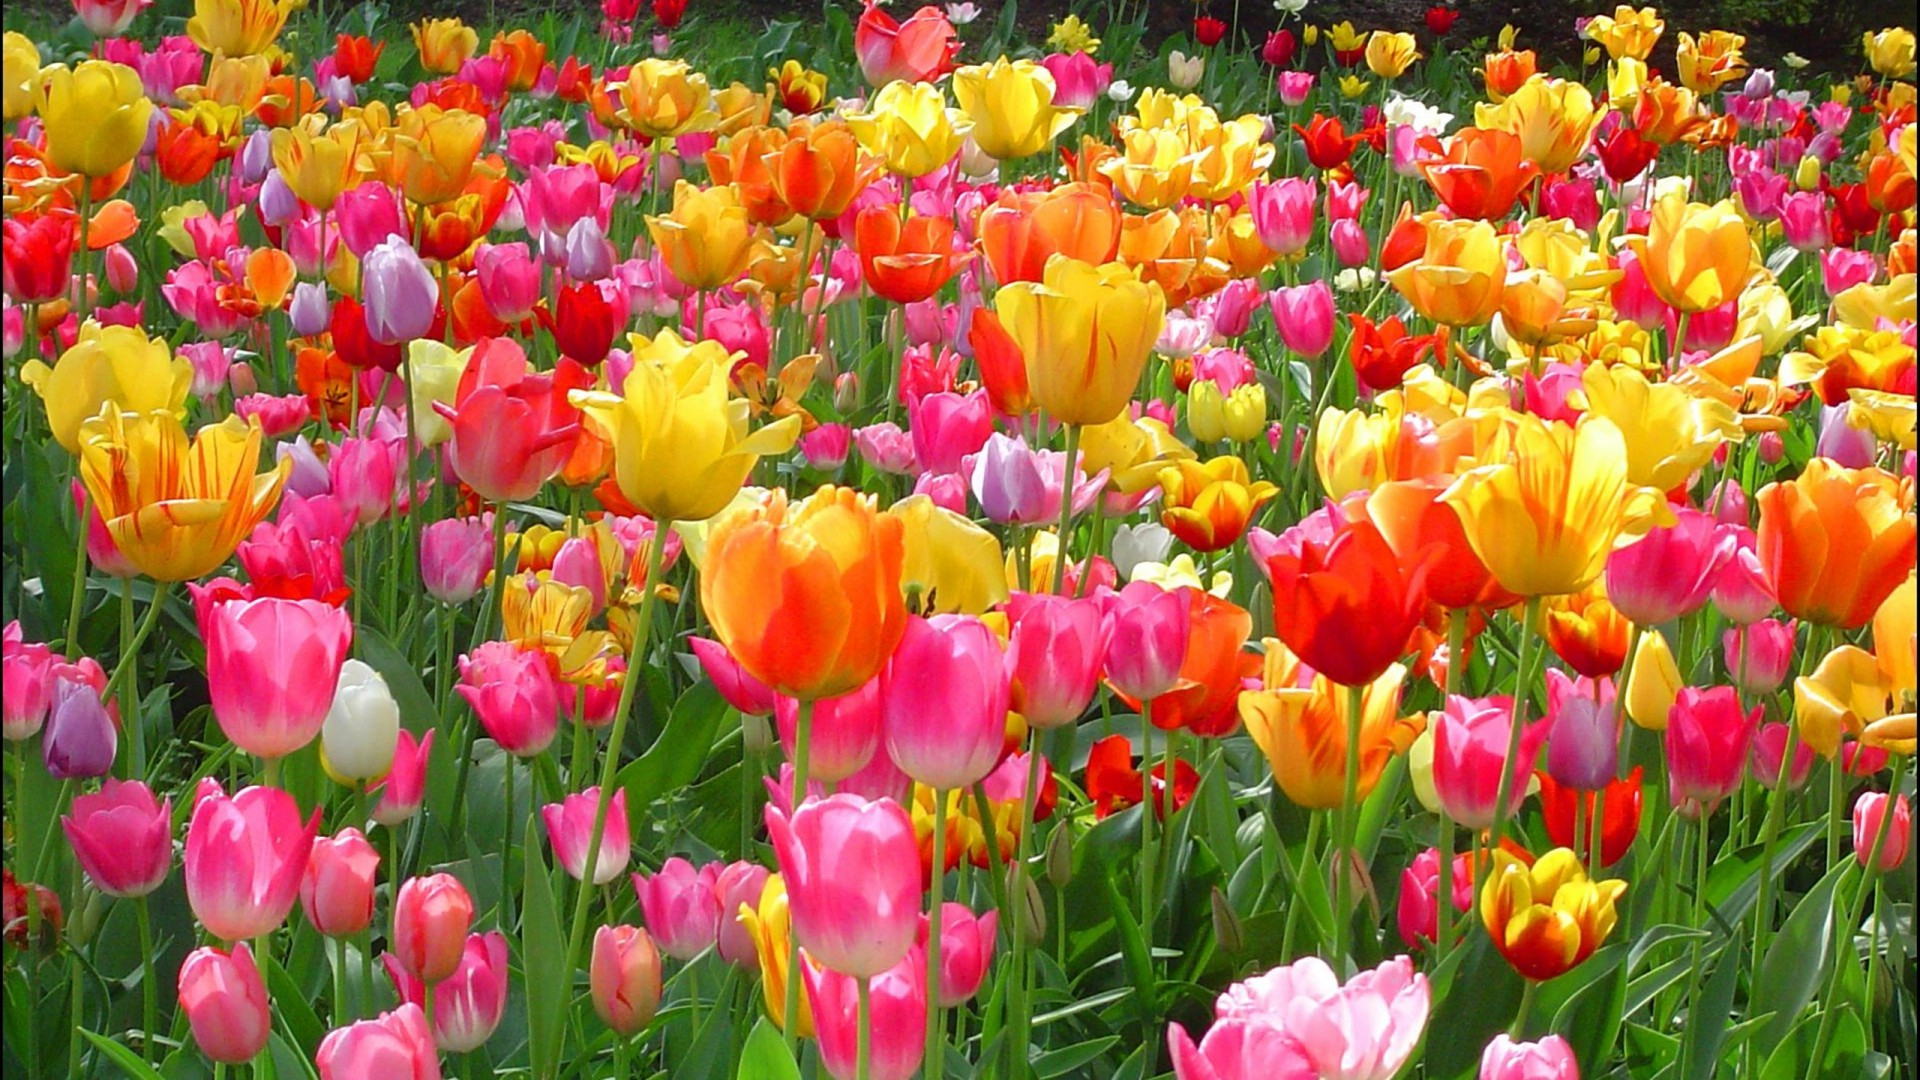 - - Tulips Flowers Images Free Download , HD Wallpaper & Backgrounds